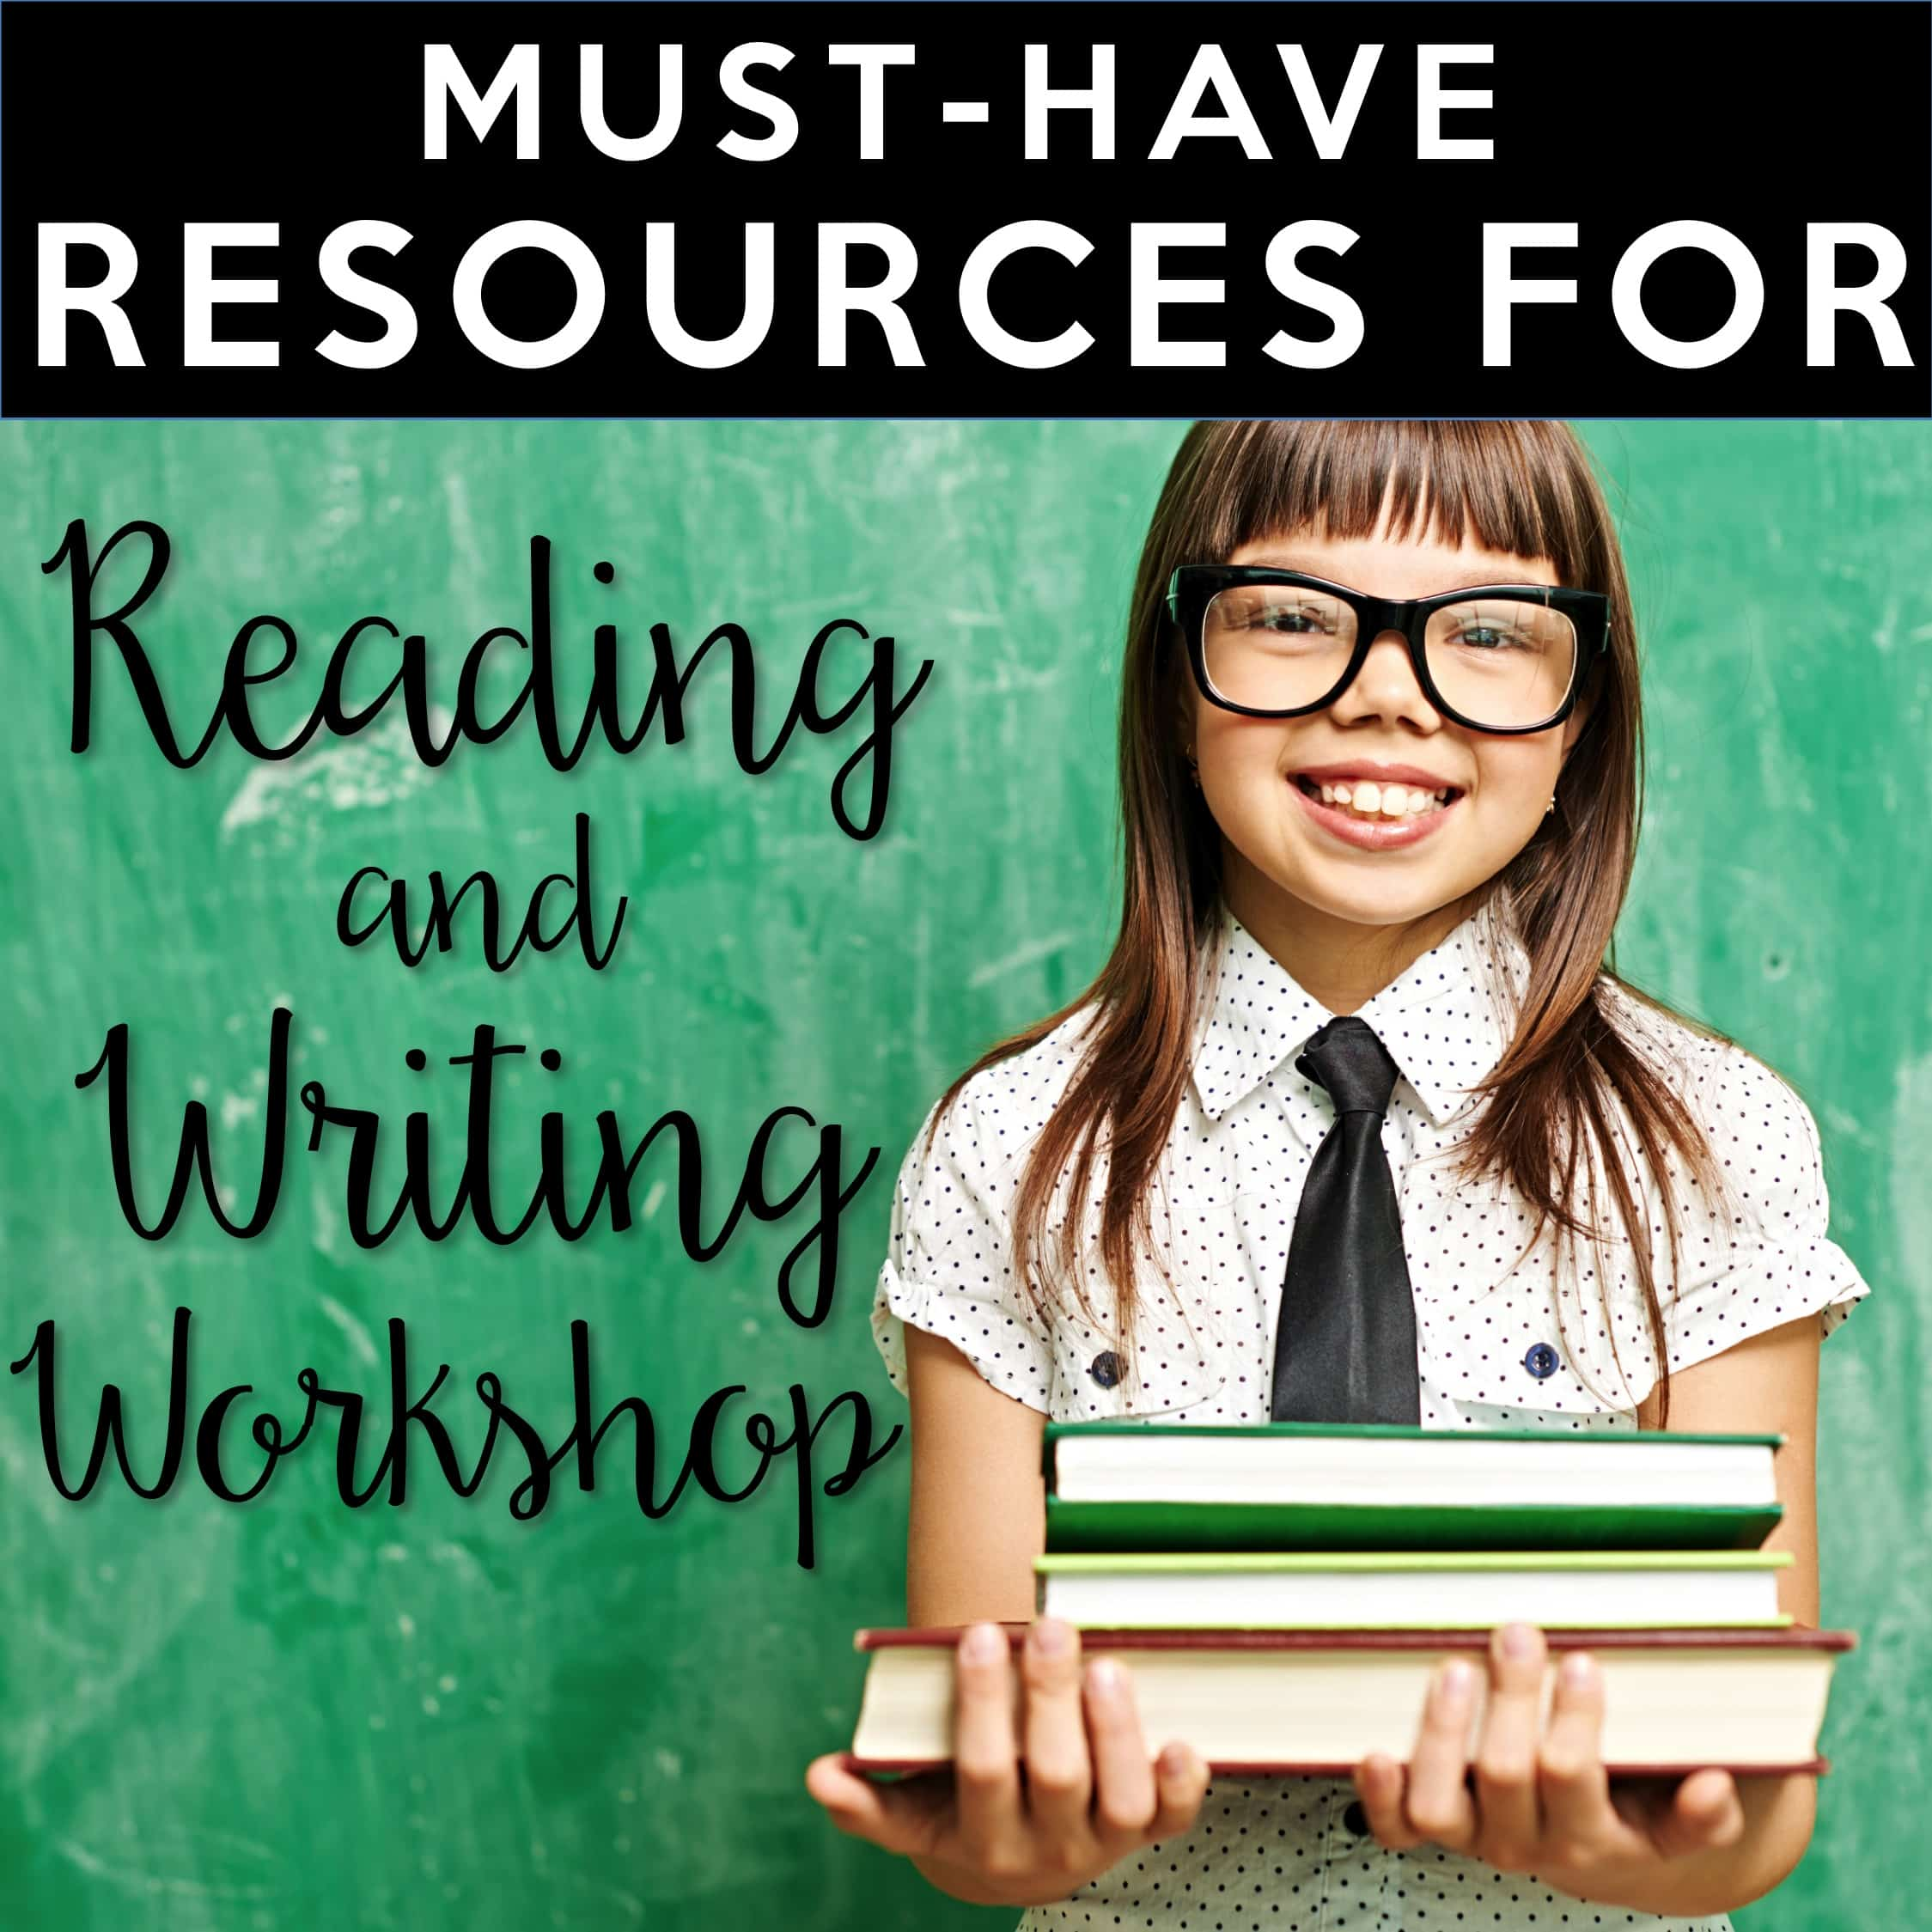 Must Have Resources For Reading And Writing Workshop